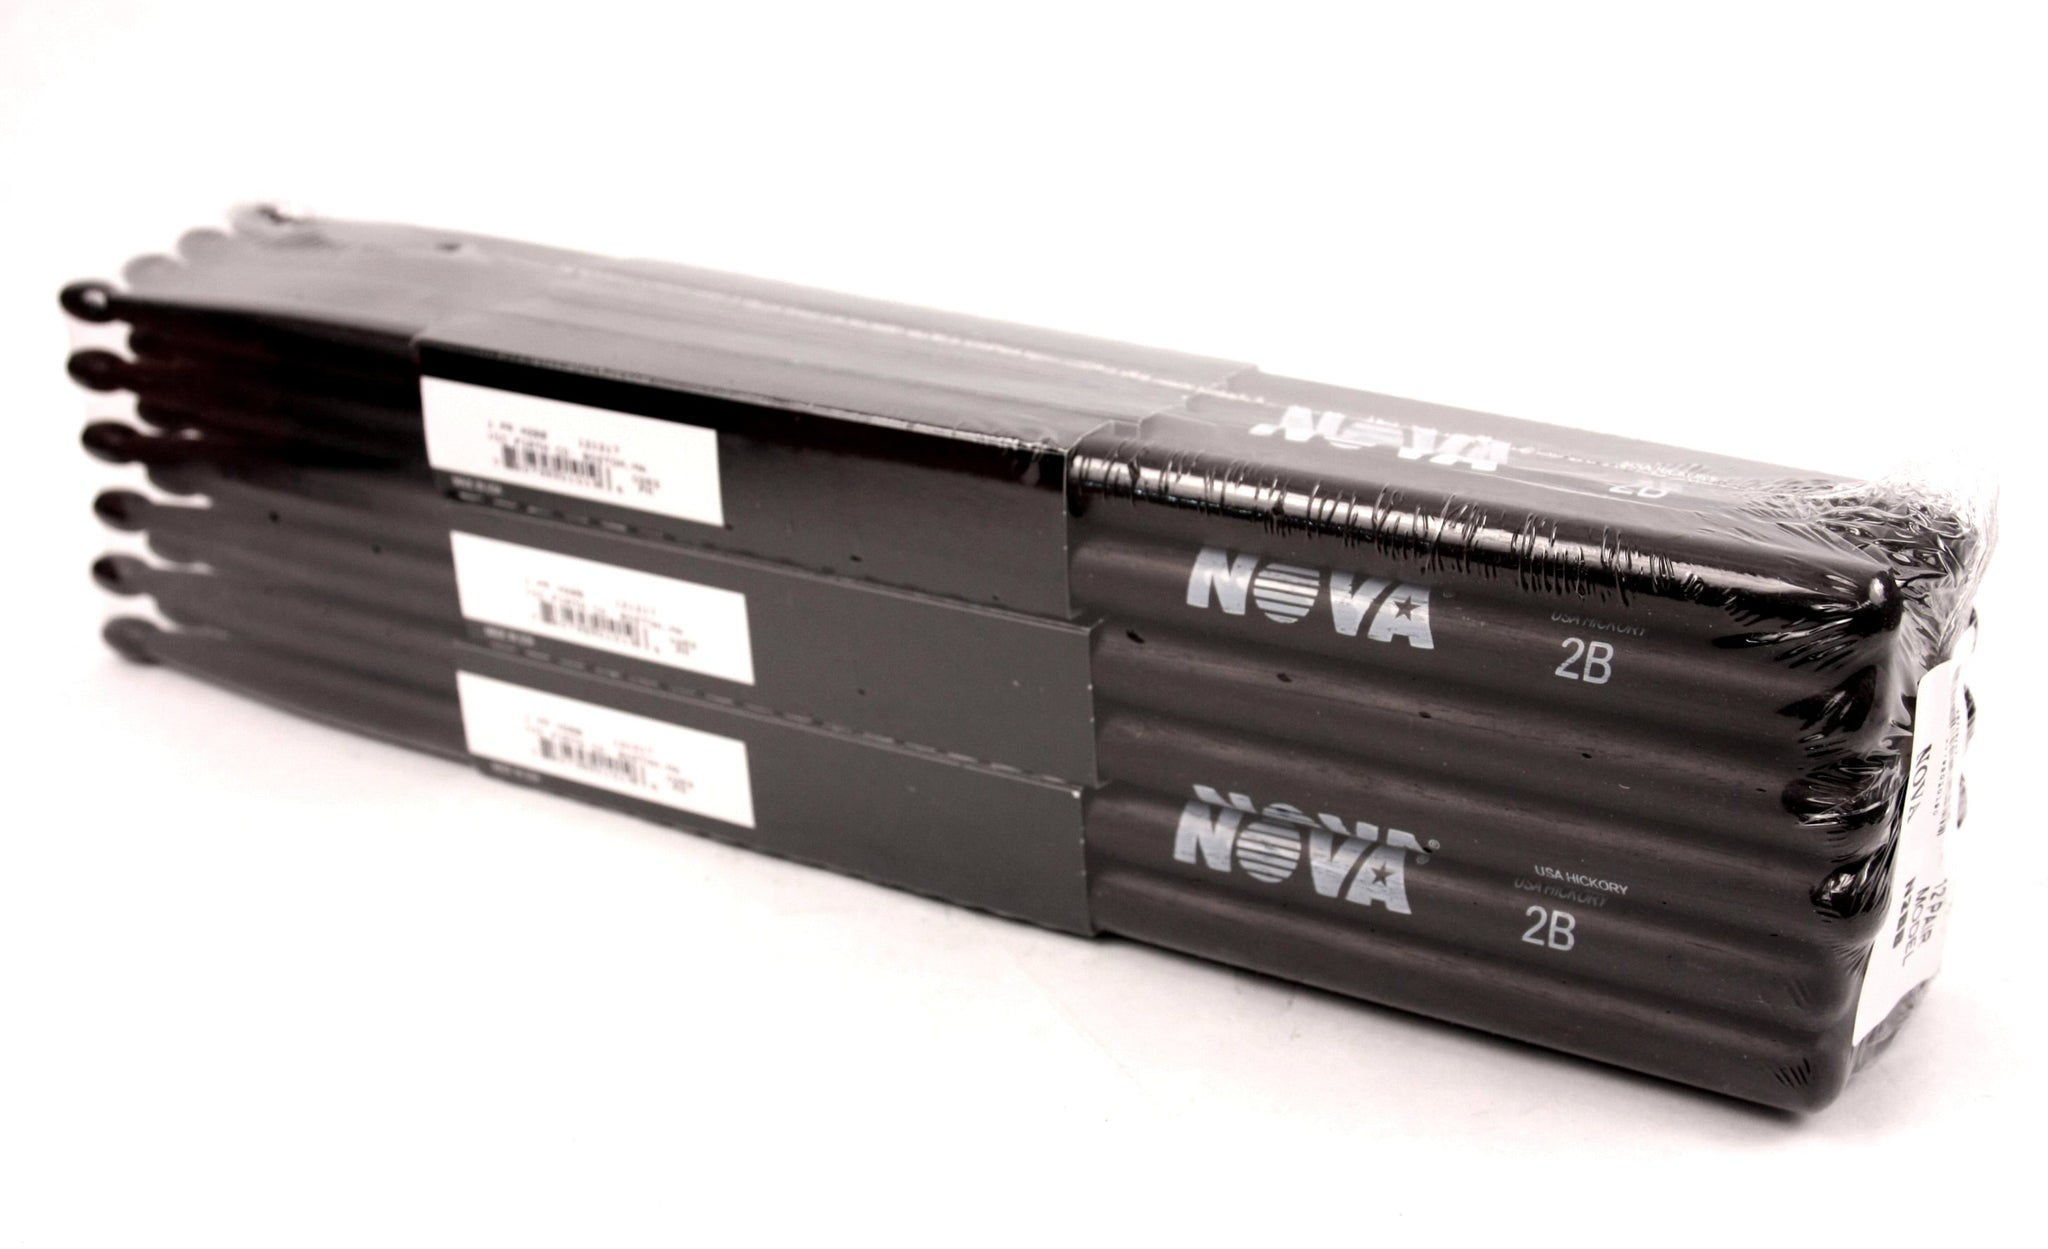 (12-Pairs) Vic Firth® NOVA® 2B Hickory Drumsticks, Black Sticks, Black Wood Tip. #N2BB